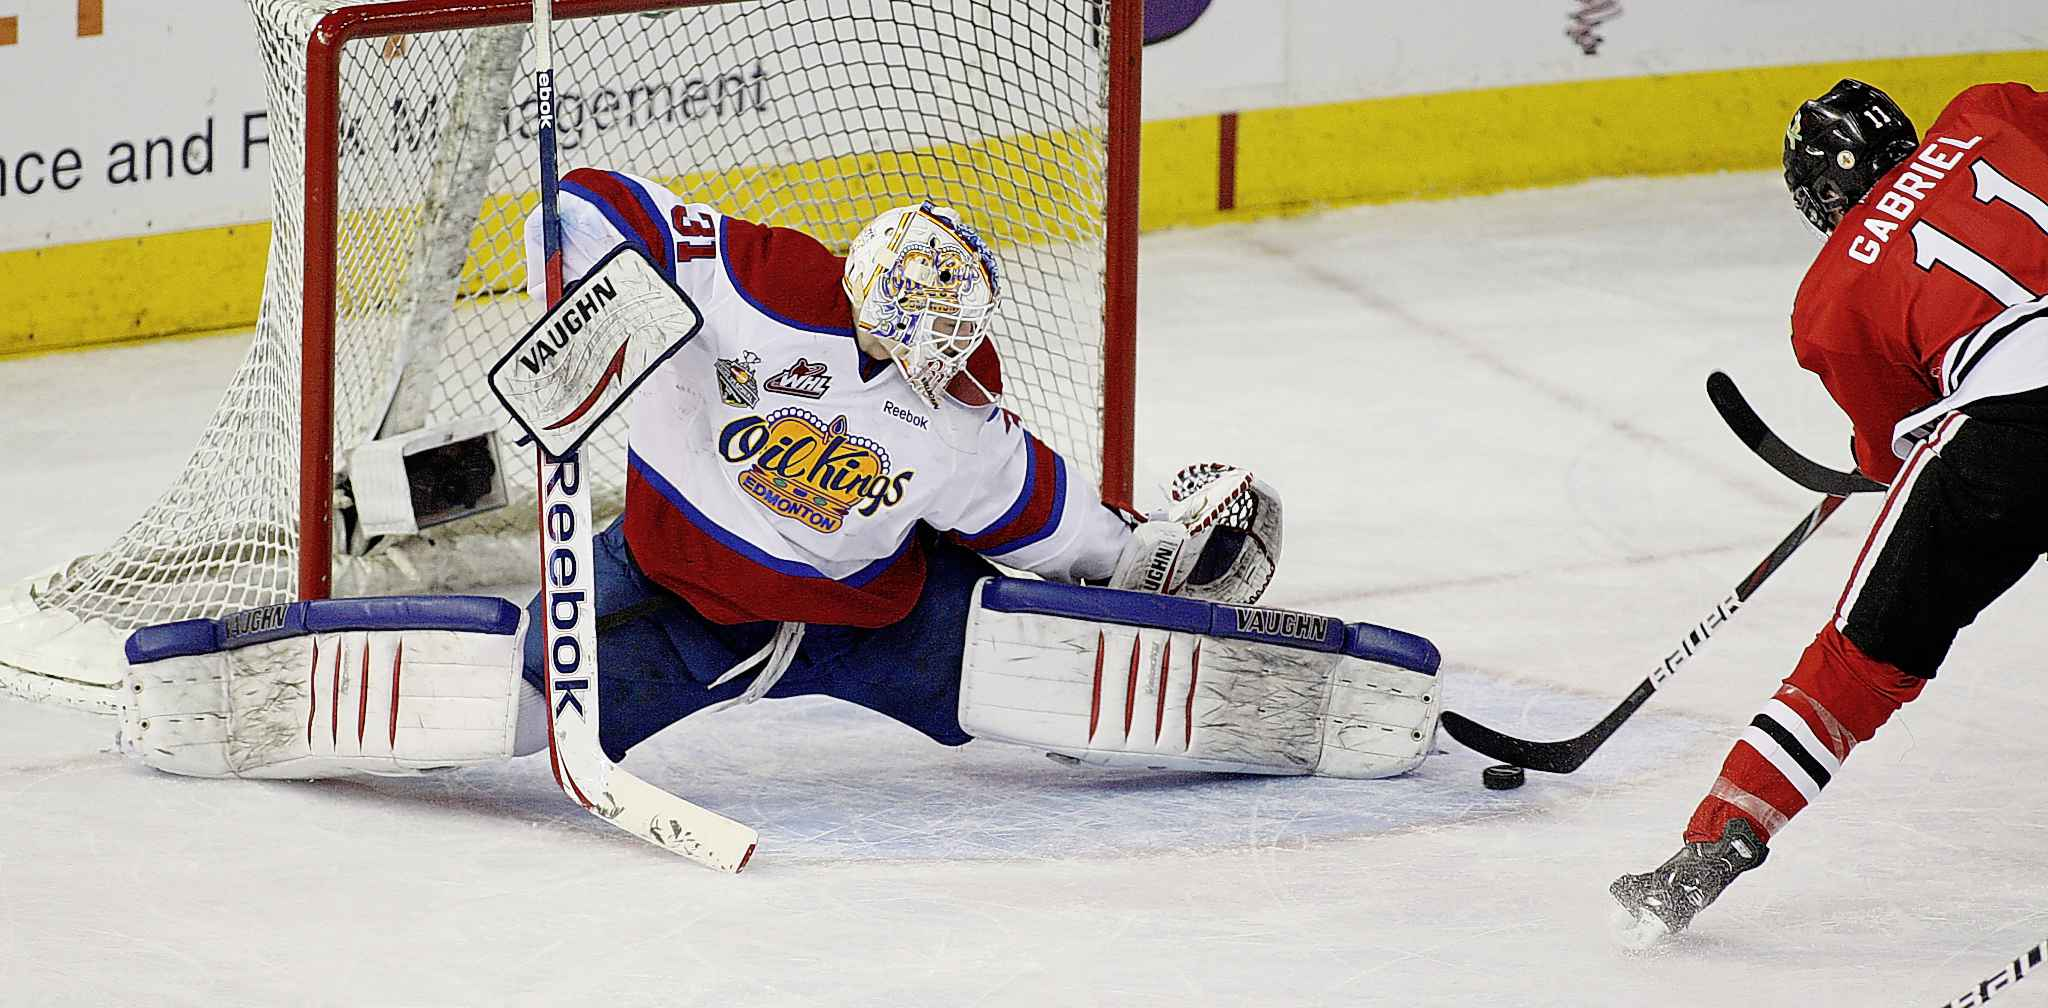 Brossoit during his time with the Western Hockey League's Edmonton Oil Kings in 2012.